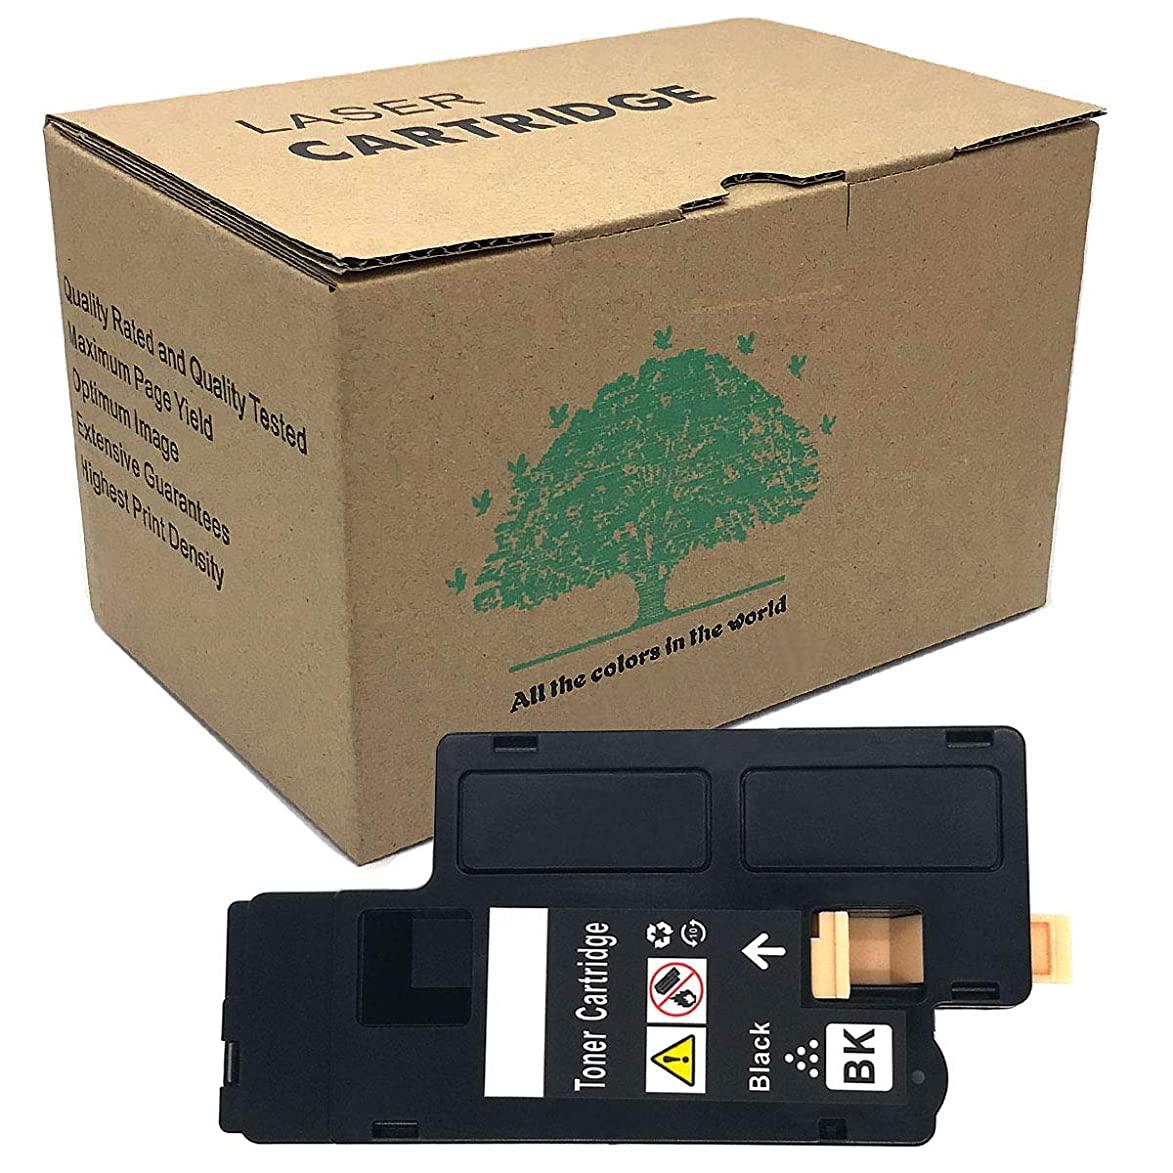 Dell C1760nw Toner Black Cartridges Compatible for Dell C1765nfw/1250/1350cnw /1355cn/C1765nf/1250c/1355w Color Printers( Toner is Imported From Japan)